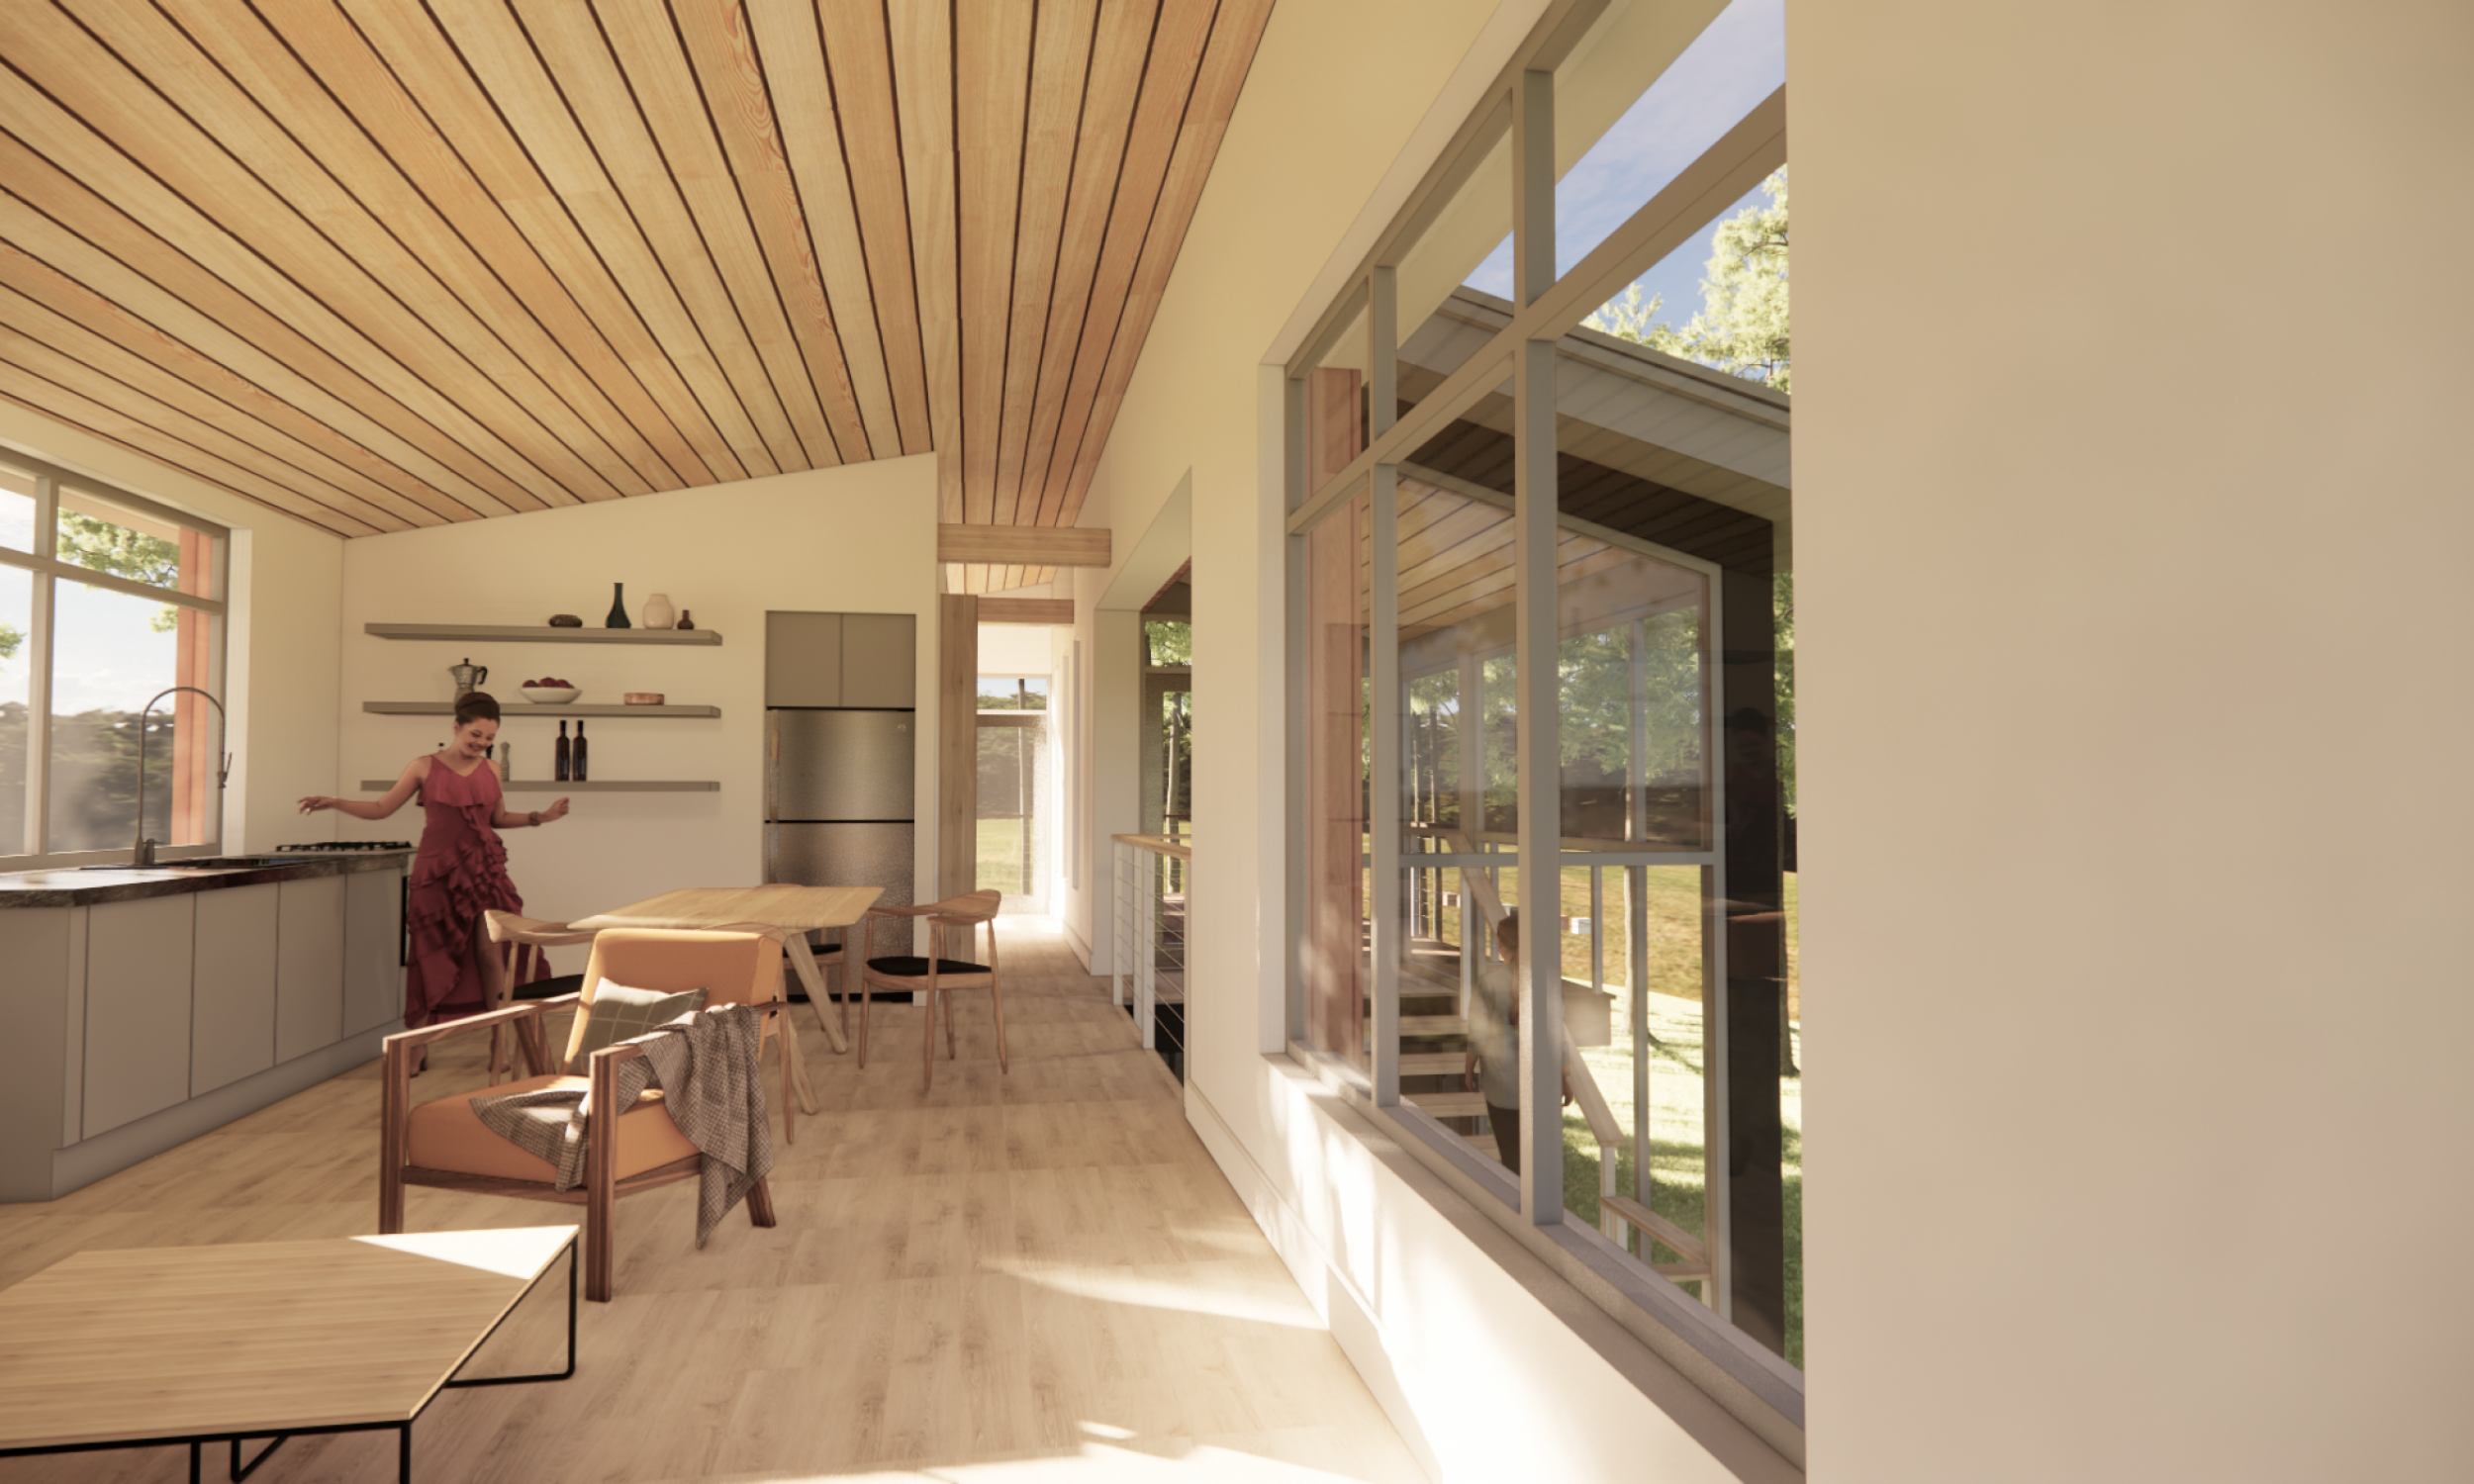 Interior space, open plan, wood ceiling, maine architecture